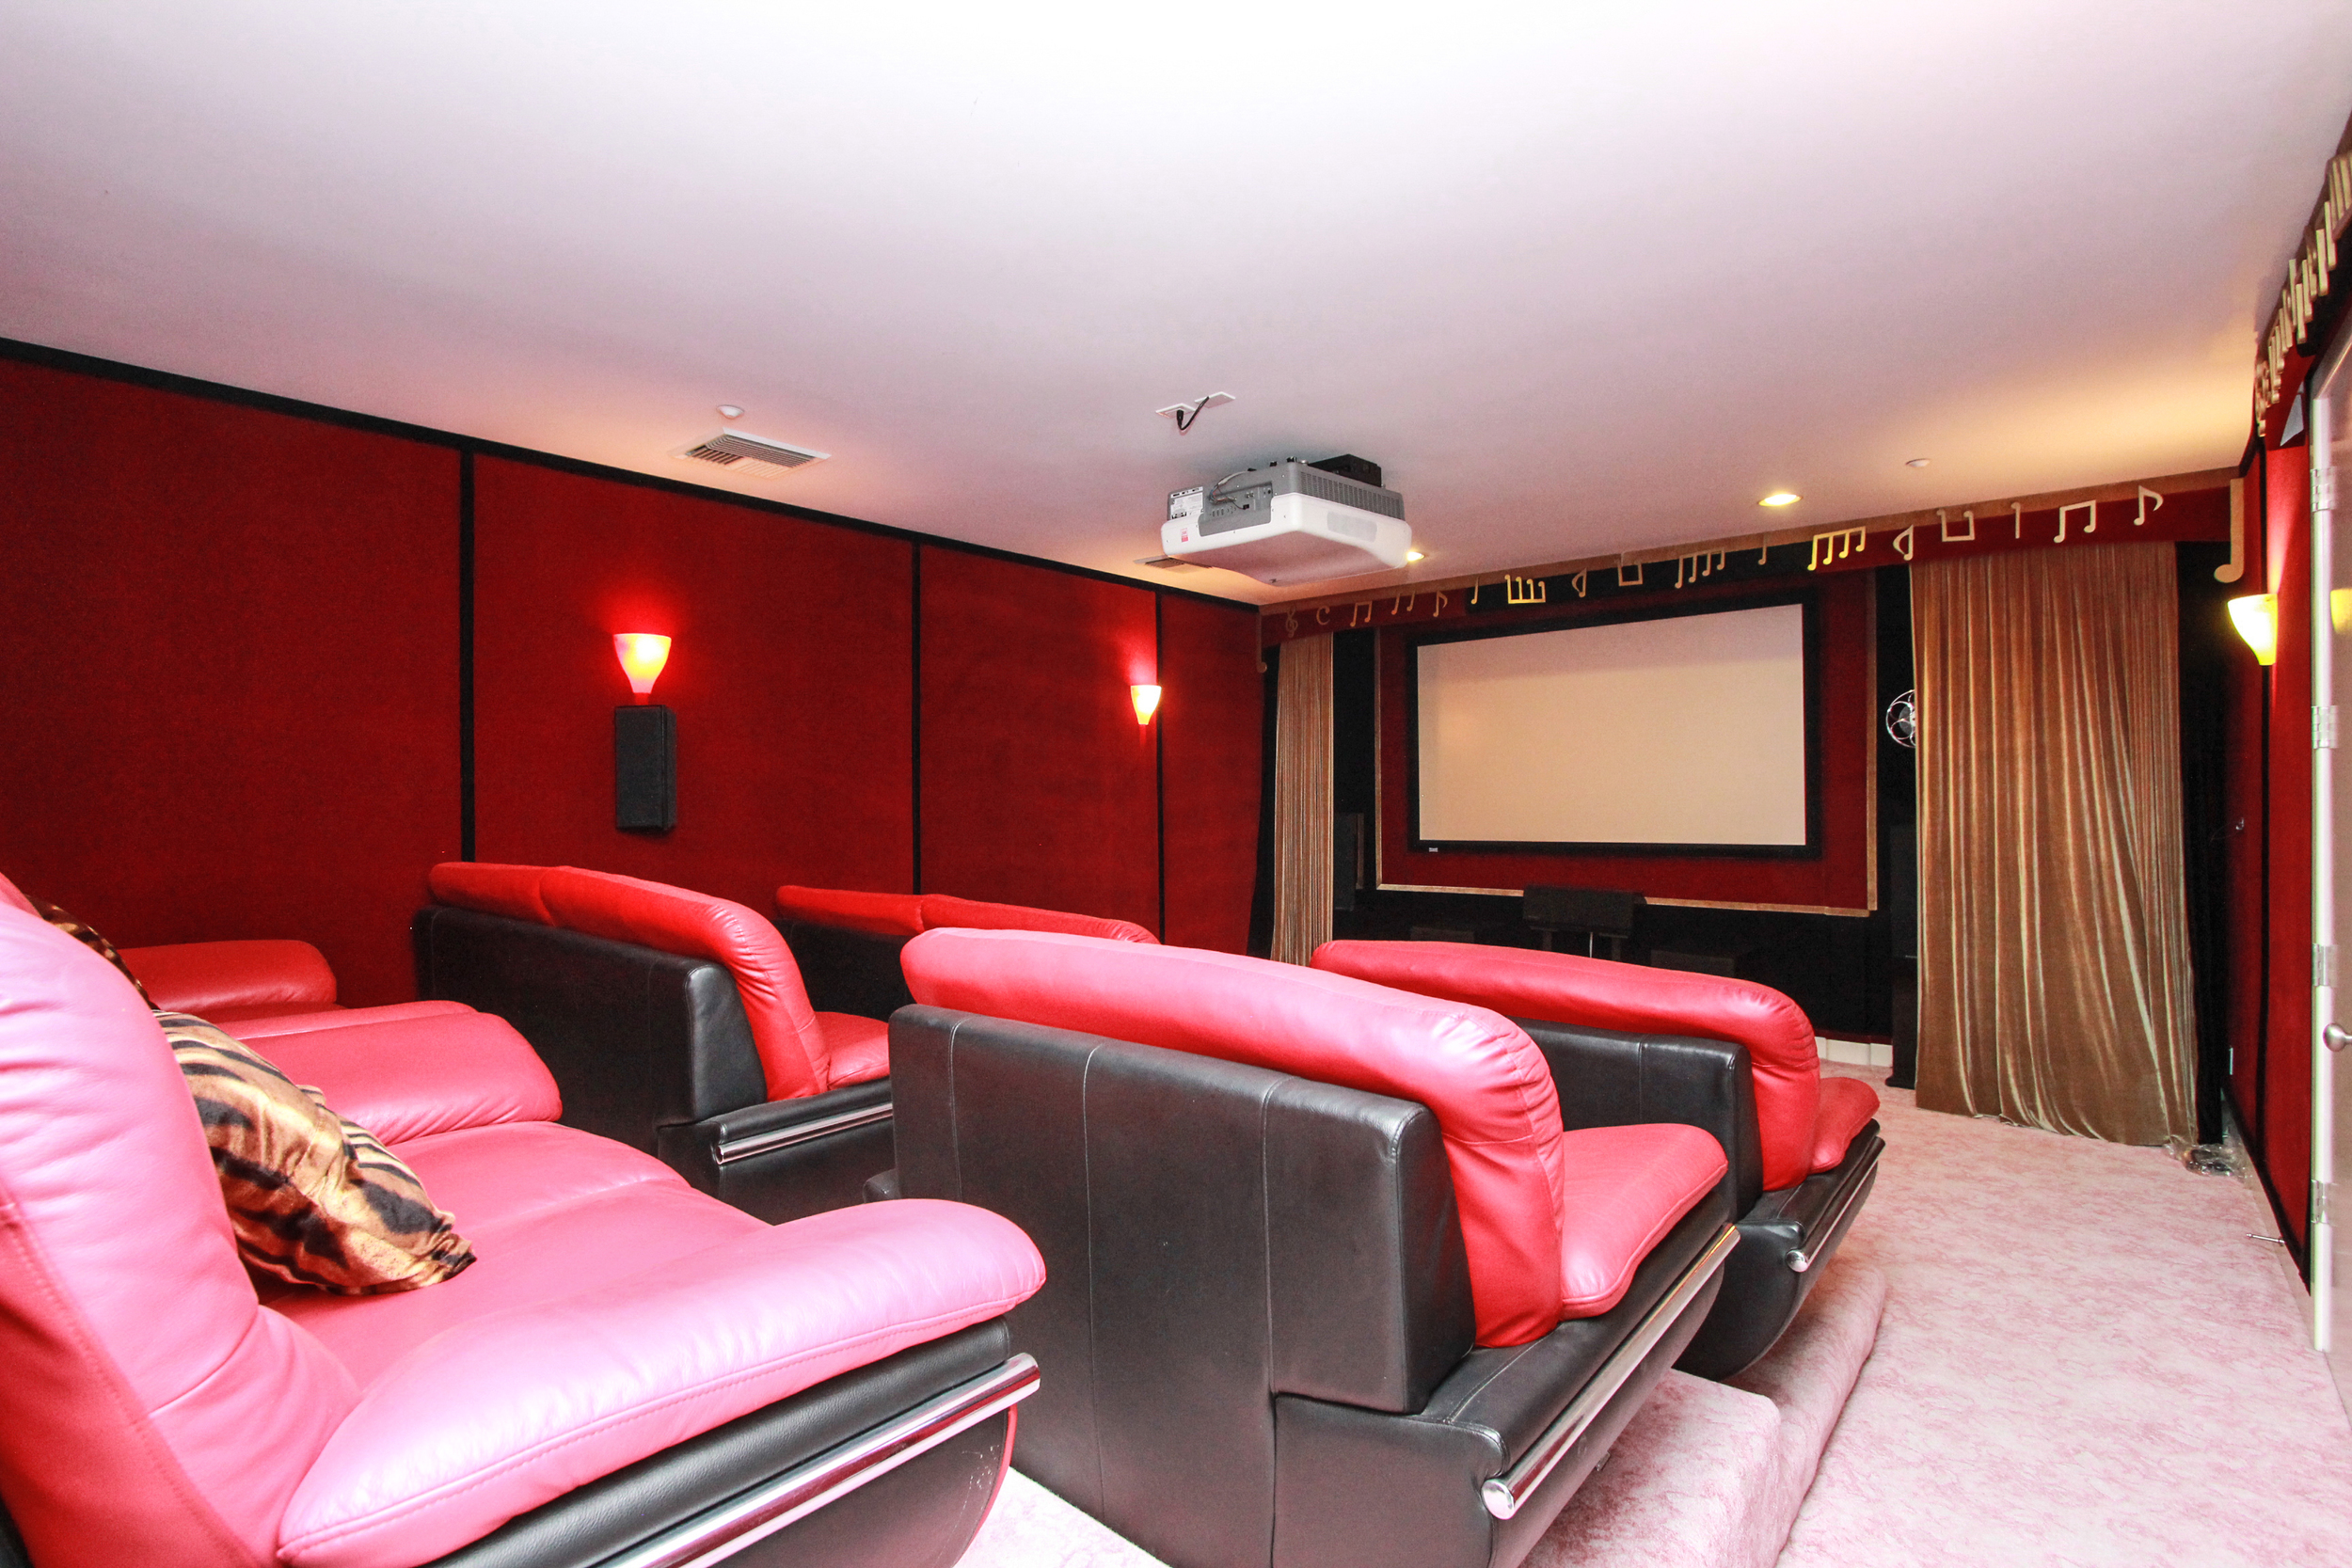 HomeTheater_1.jpg